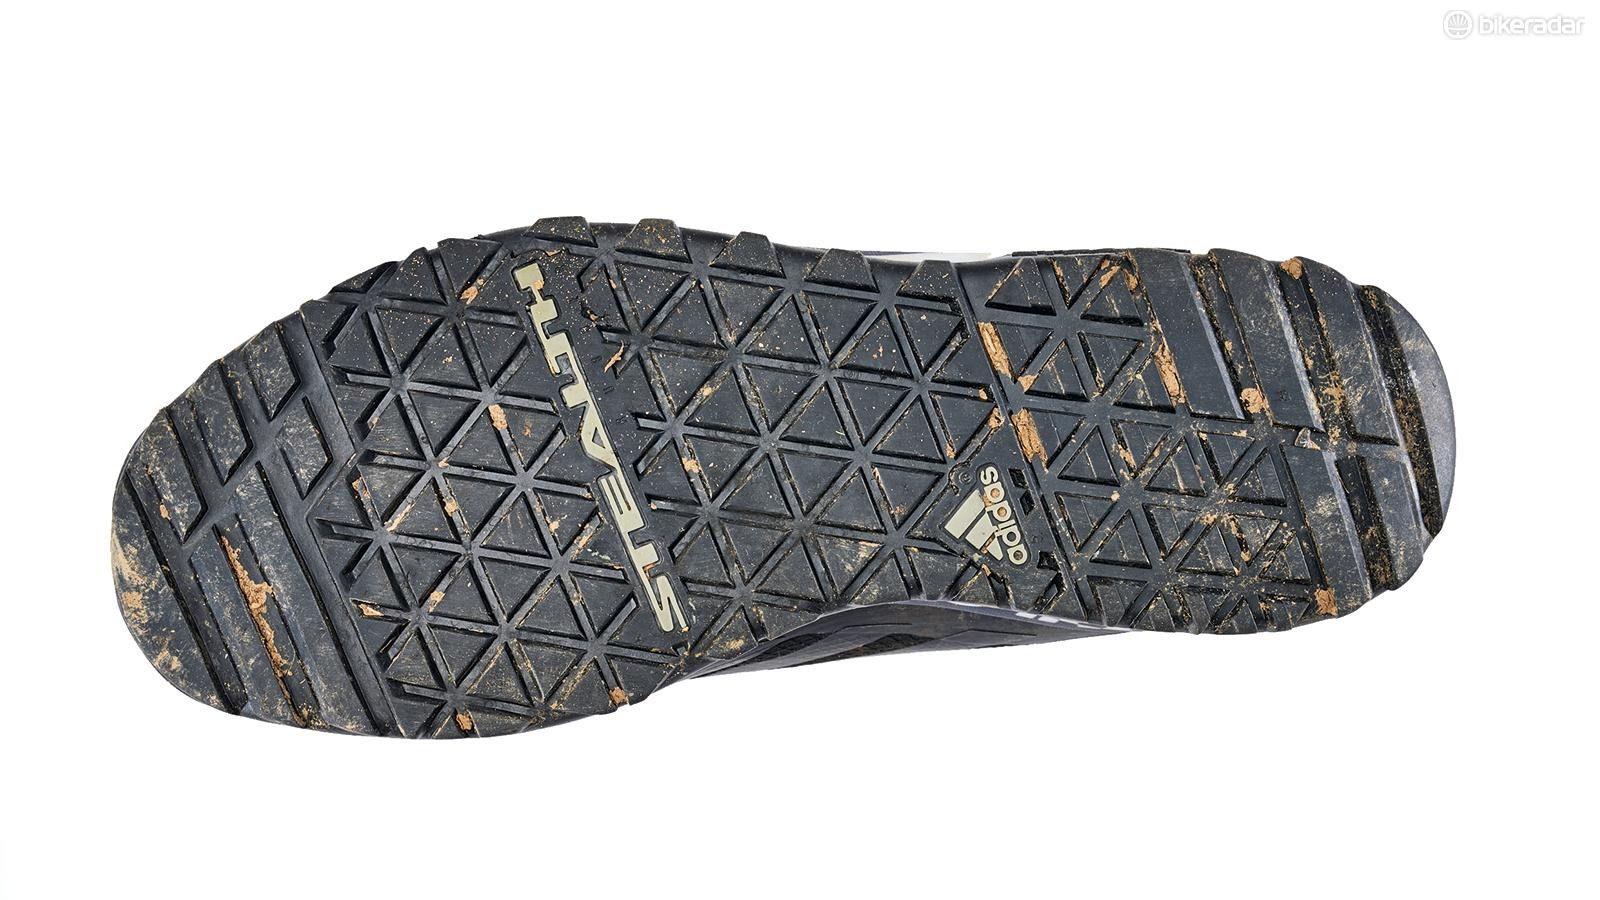 The sole uses the same Stealth rubber compound that's found on Five Tens